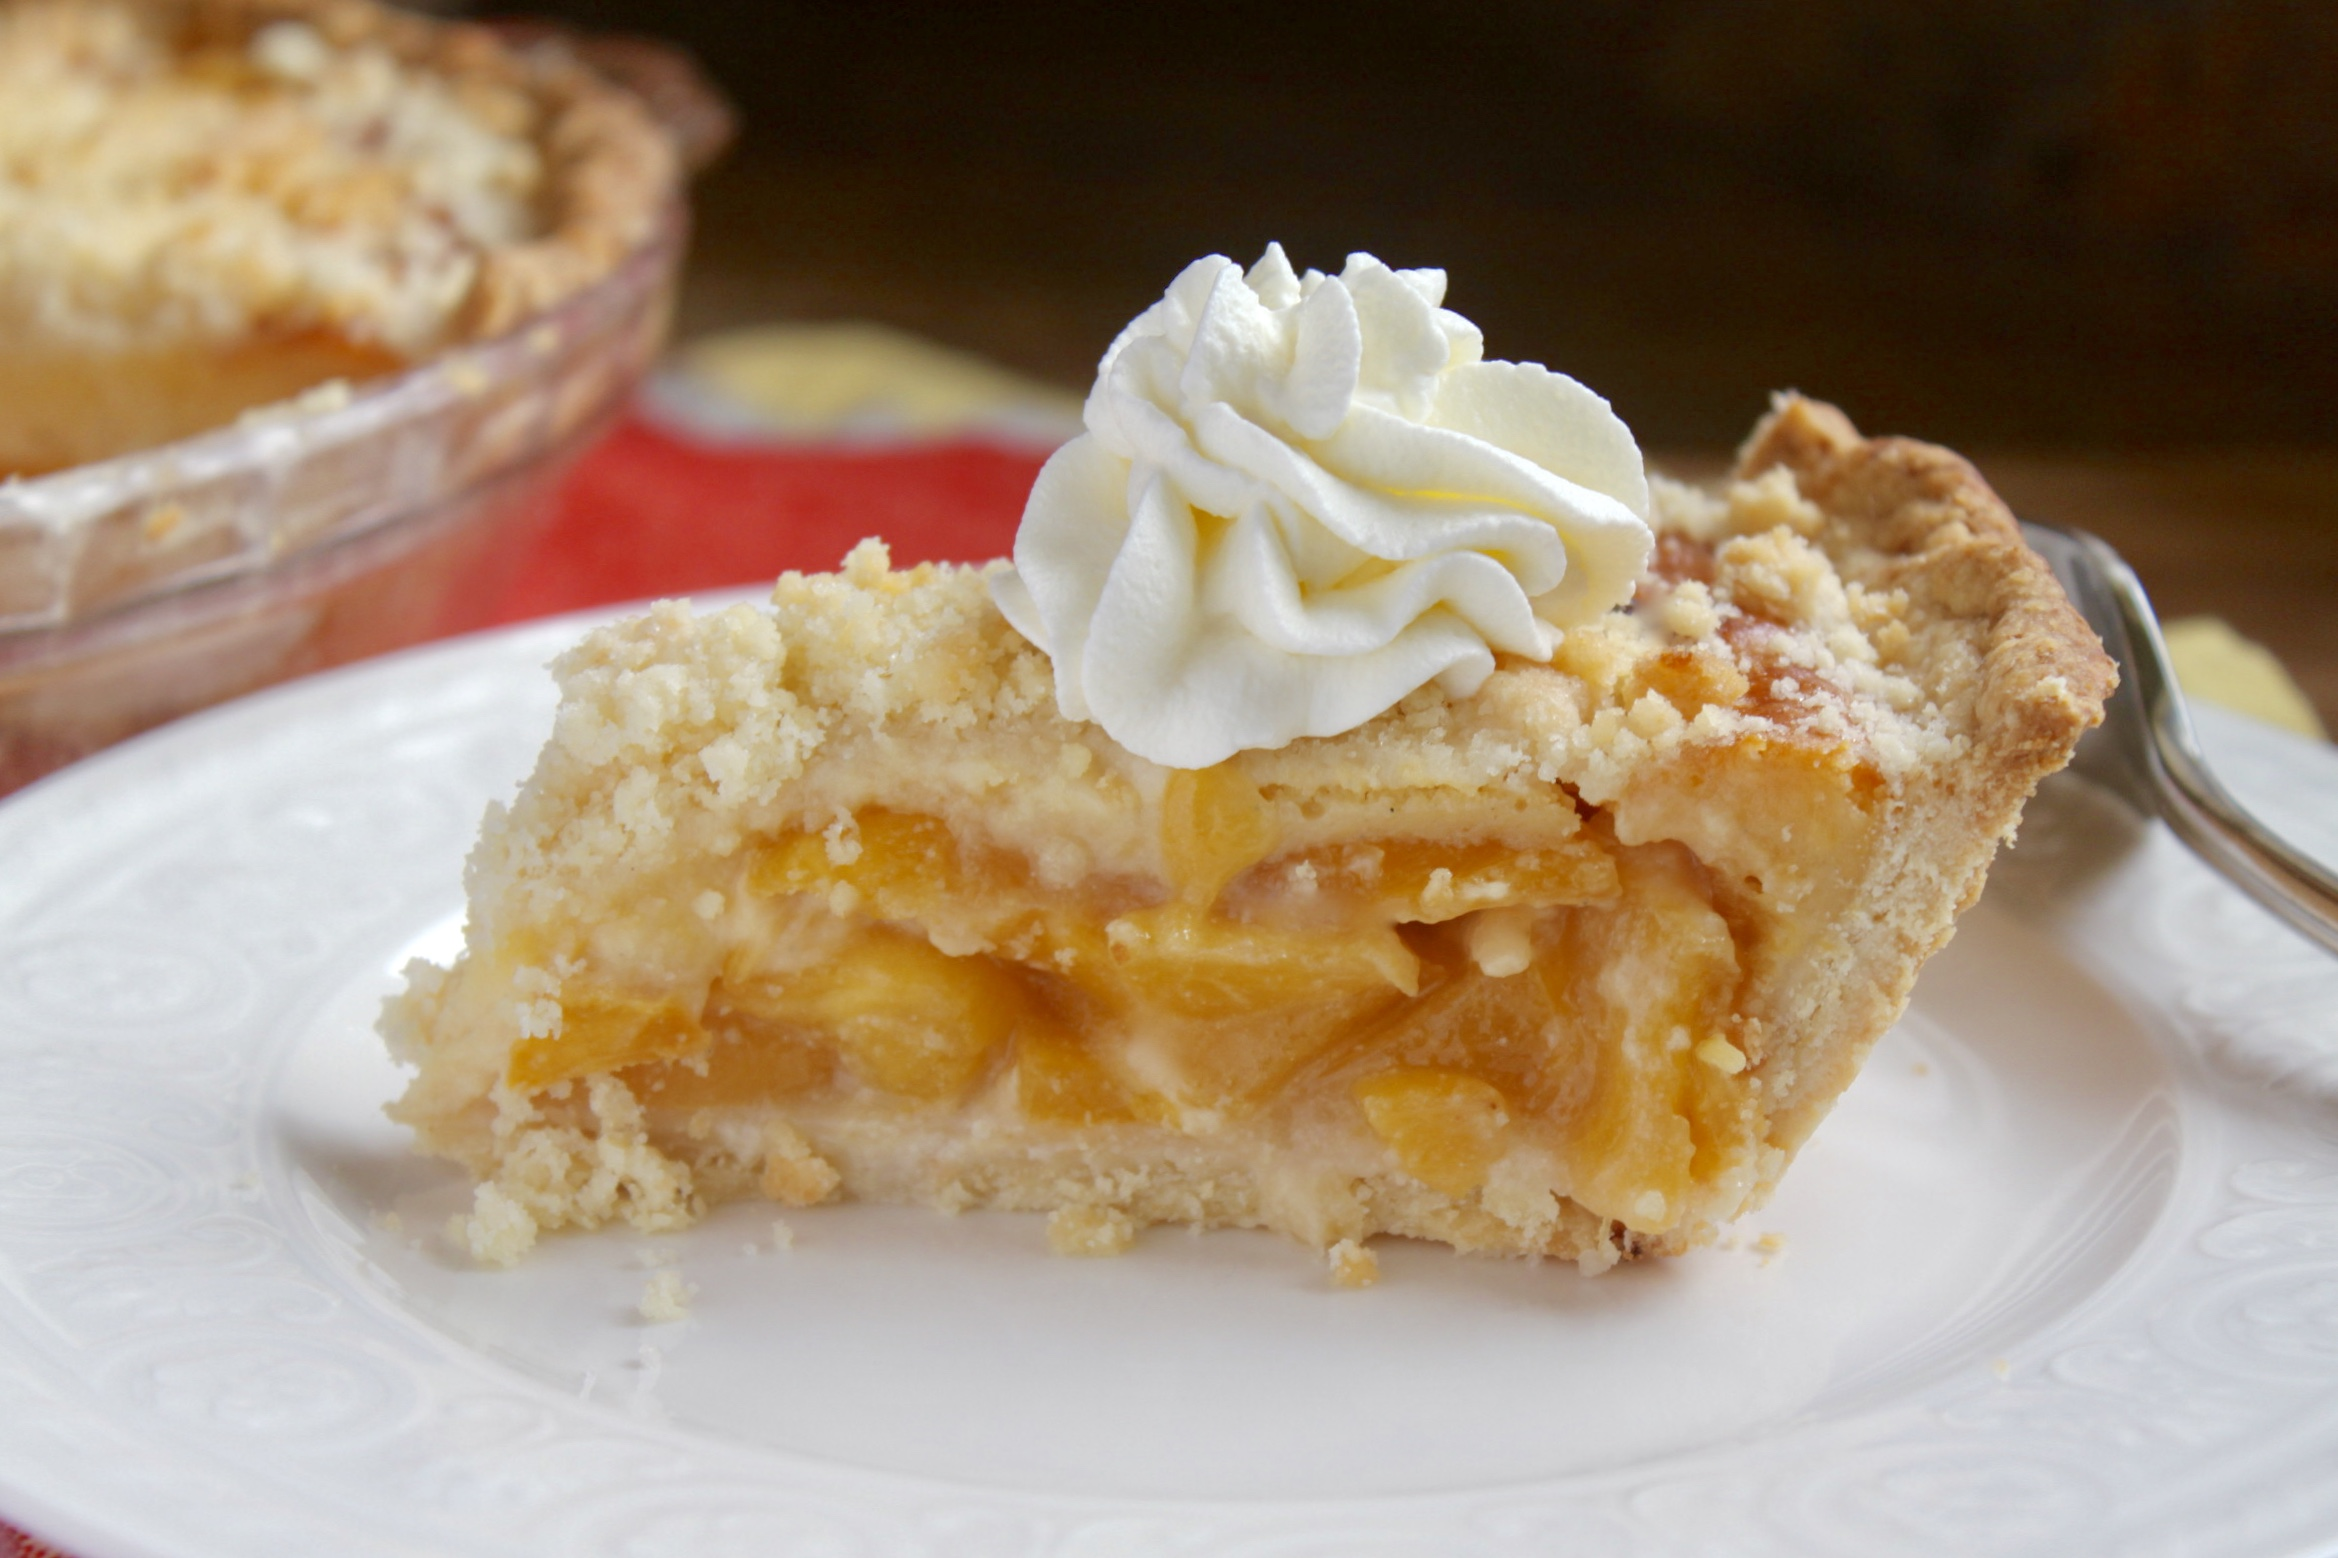 Slice of custard peach pie with whipped cream